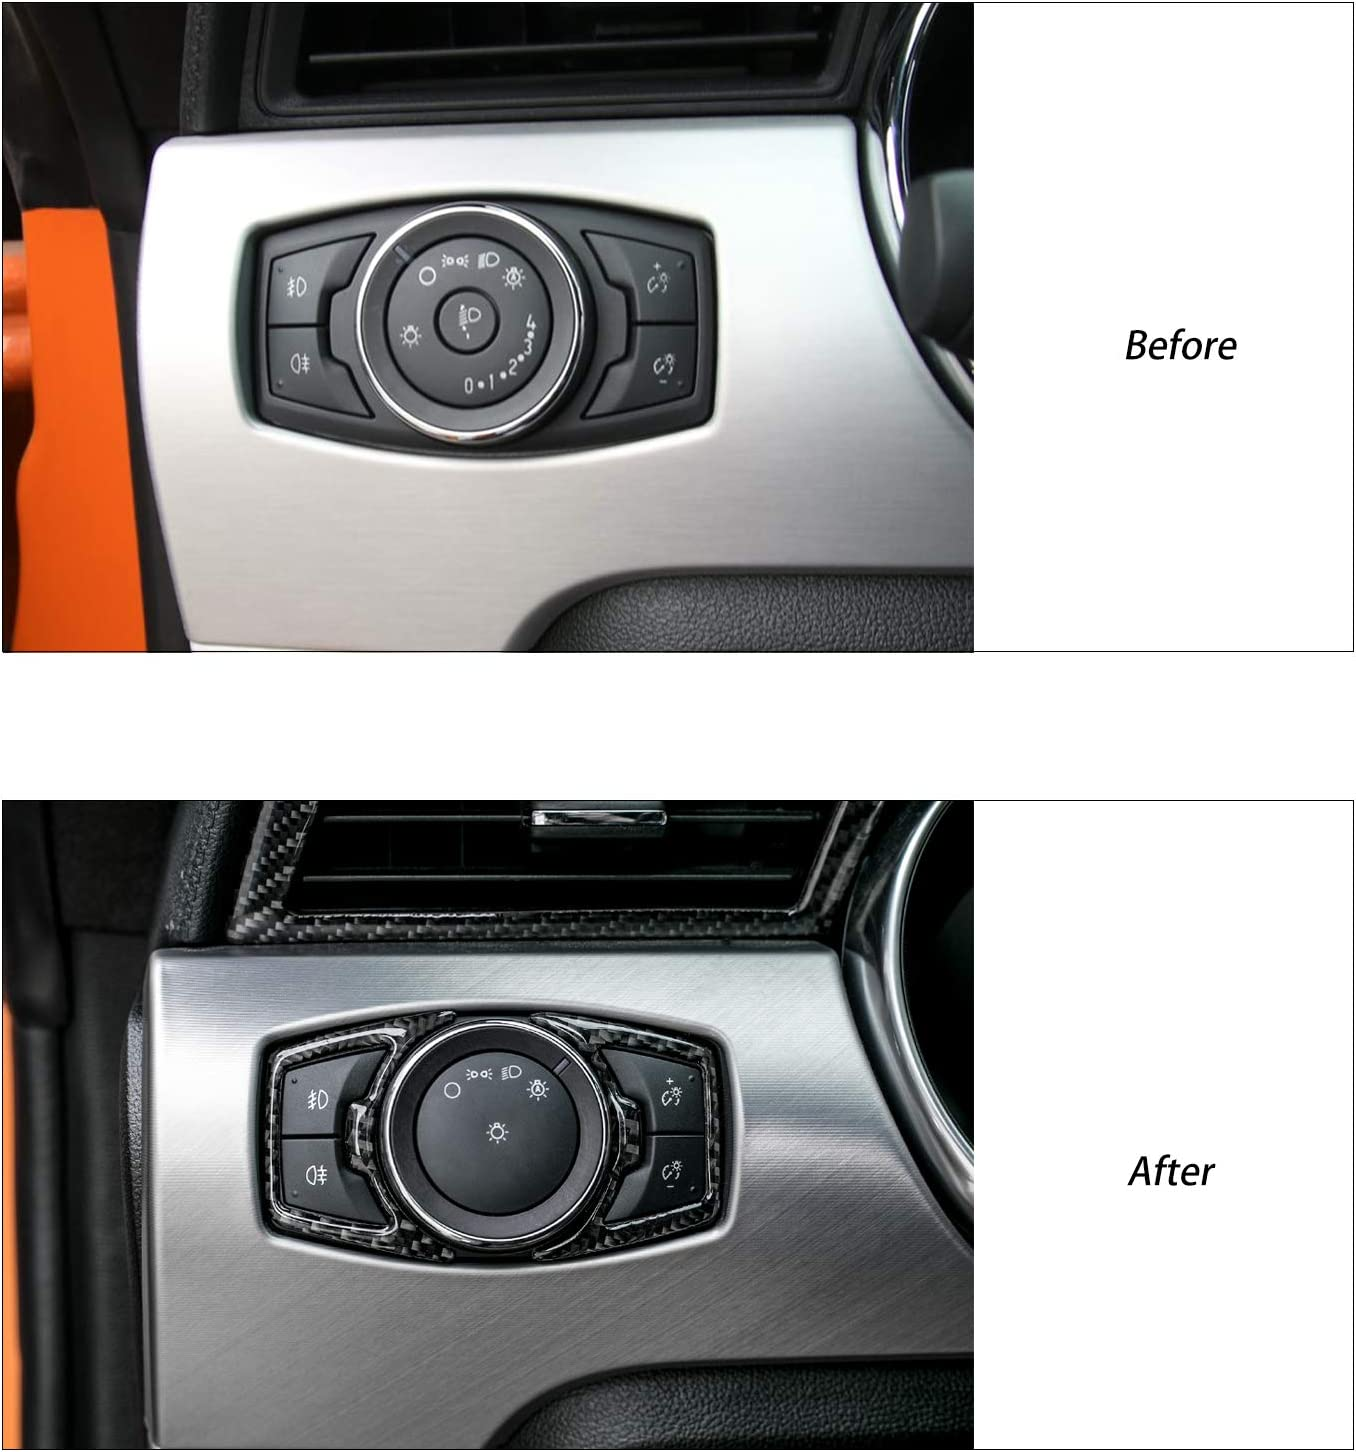 VTECKIY for Mustang Real Carbon Fiber Headlight Adjust Control Panel Trims for Ford Mustang 201502016 2017 2018 2019 2020 2021